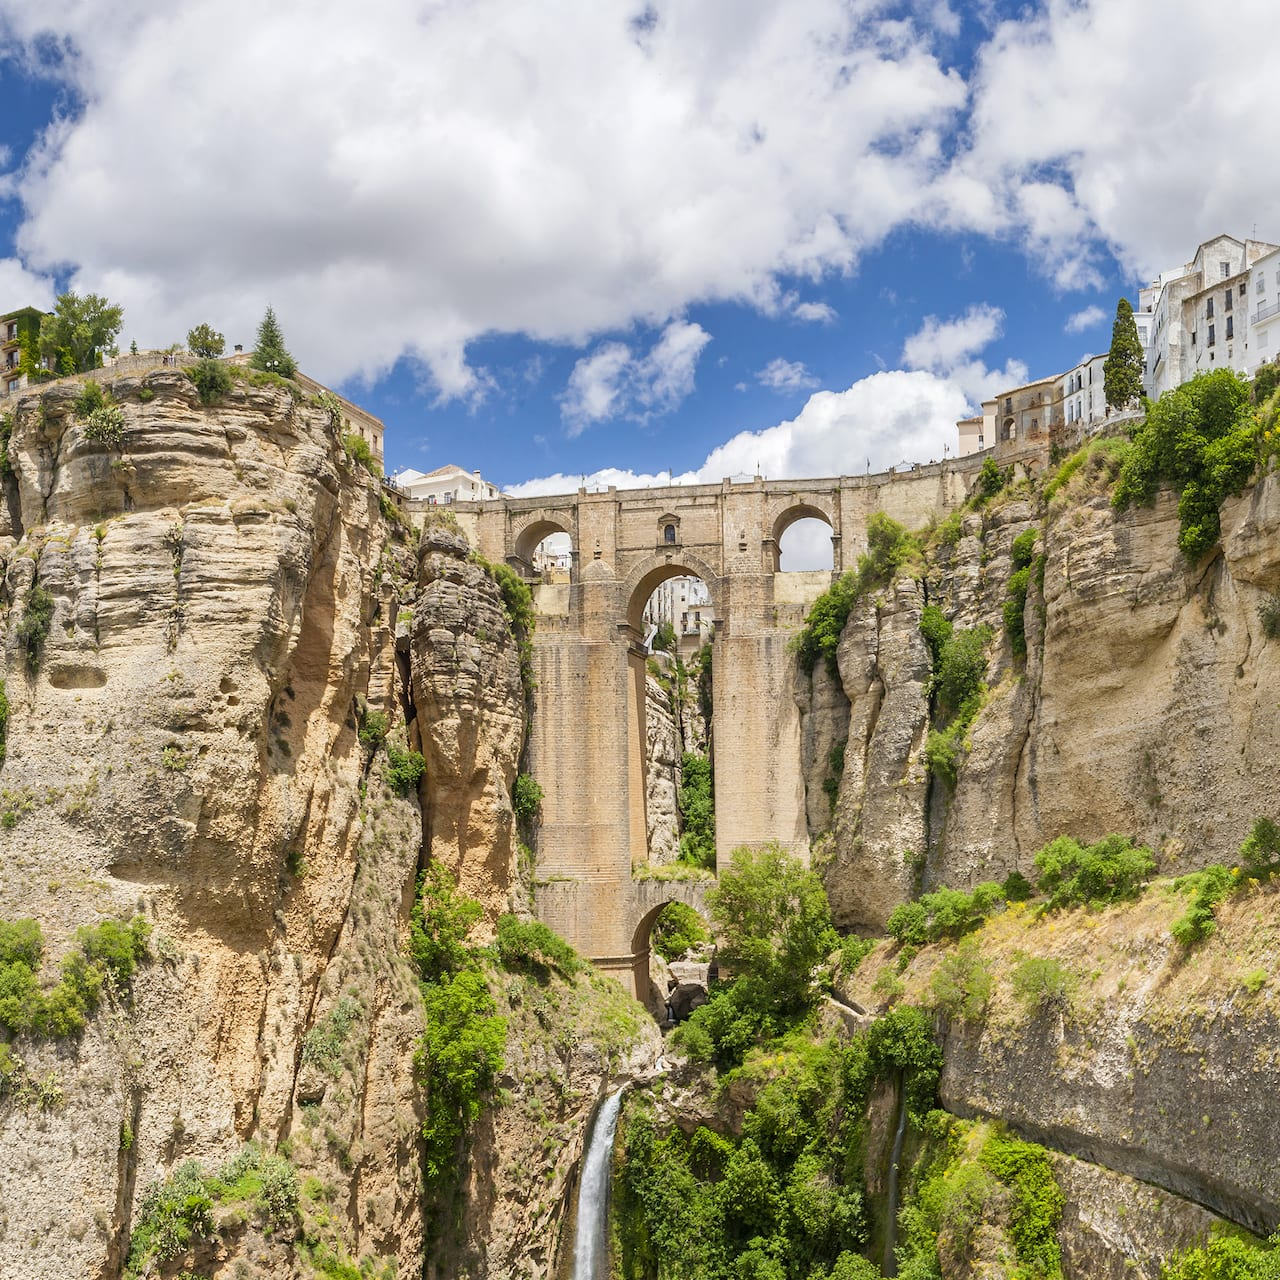 The Puente Nuevo bridge spans the gorge between 2 steep cliffs